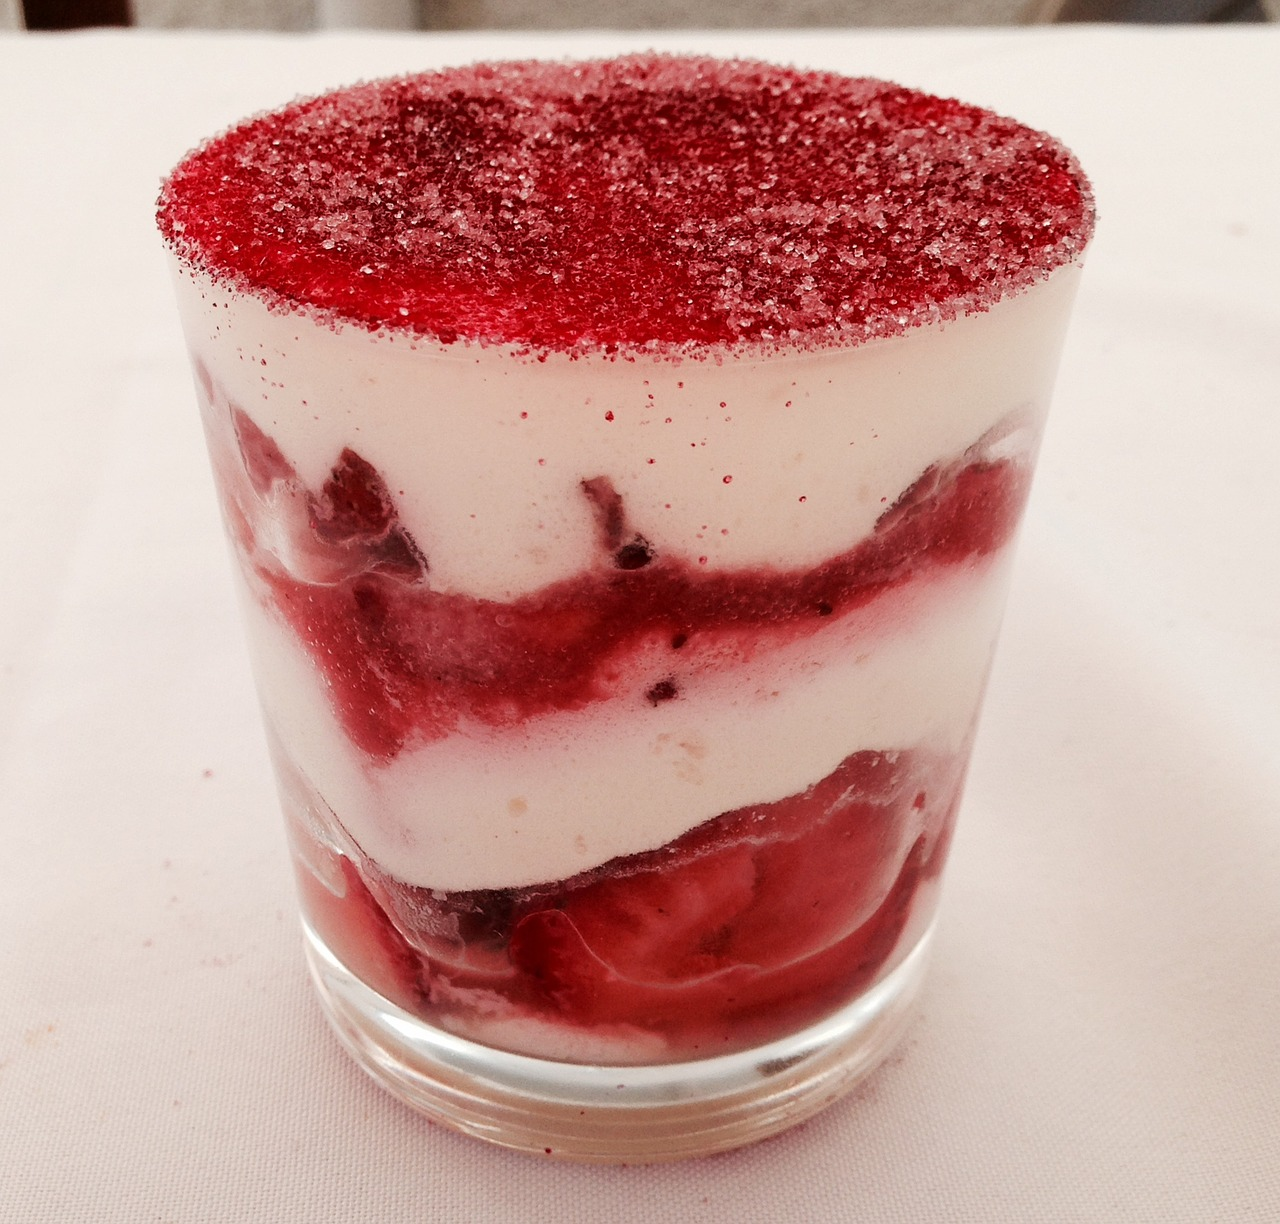 menu-express-amoureux-st-valentin-tiramisu-verrine-fruits-rouges